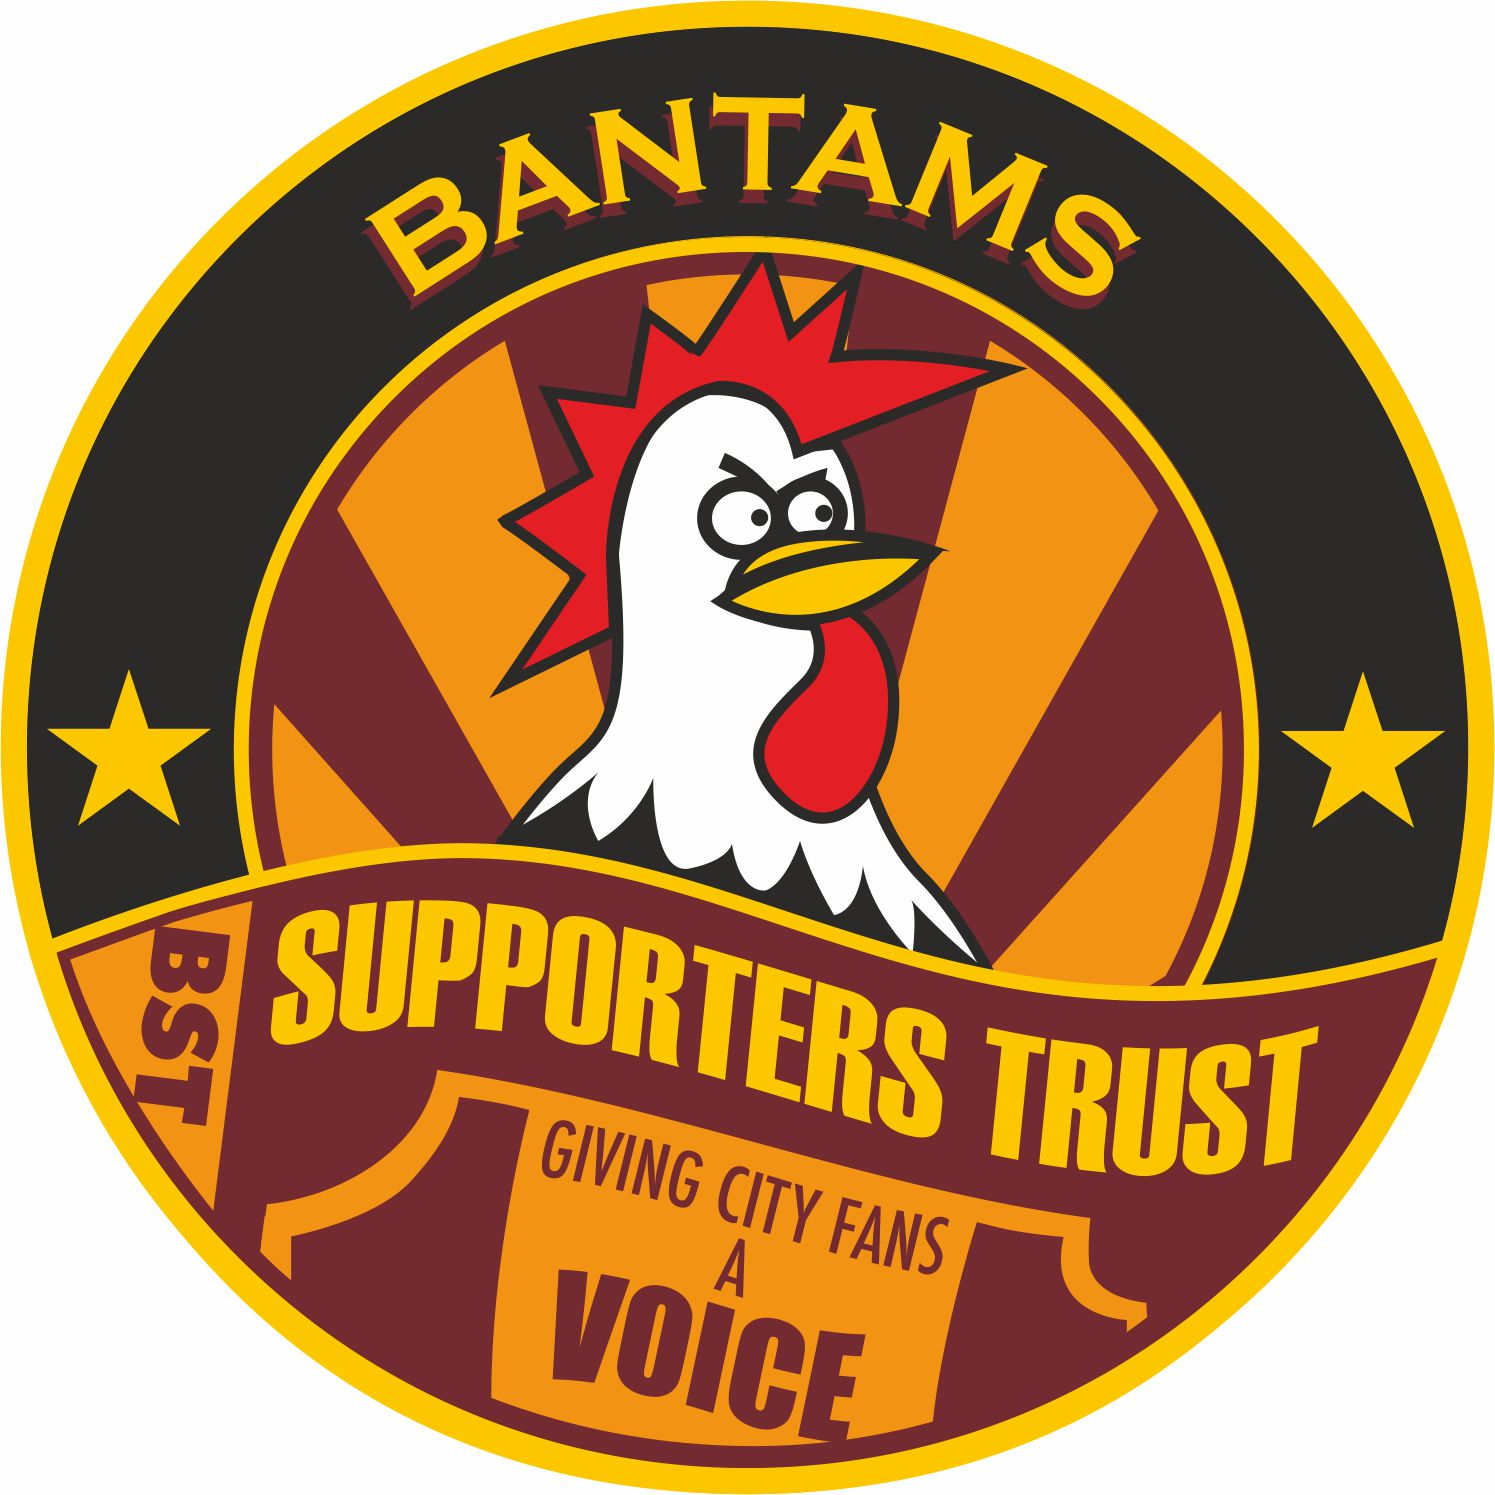 Bradford City Bantams Supporters' Trust